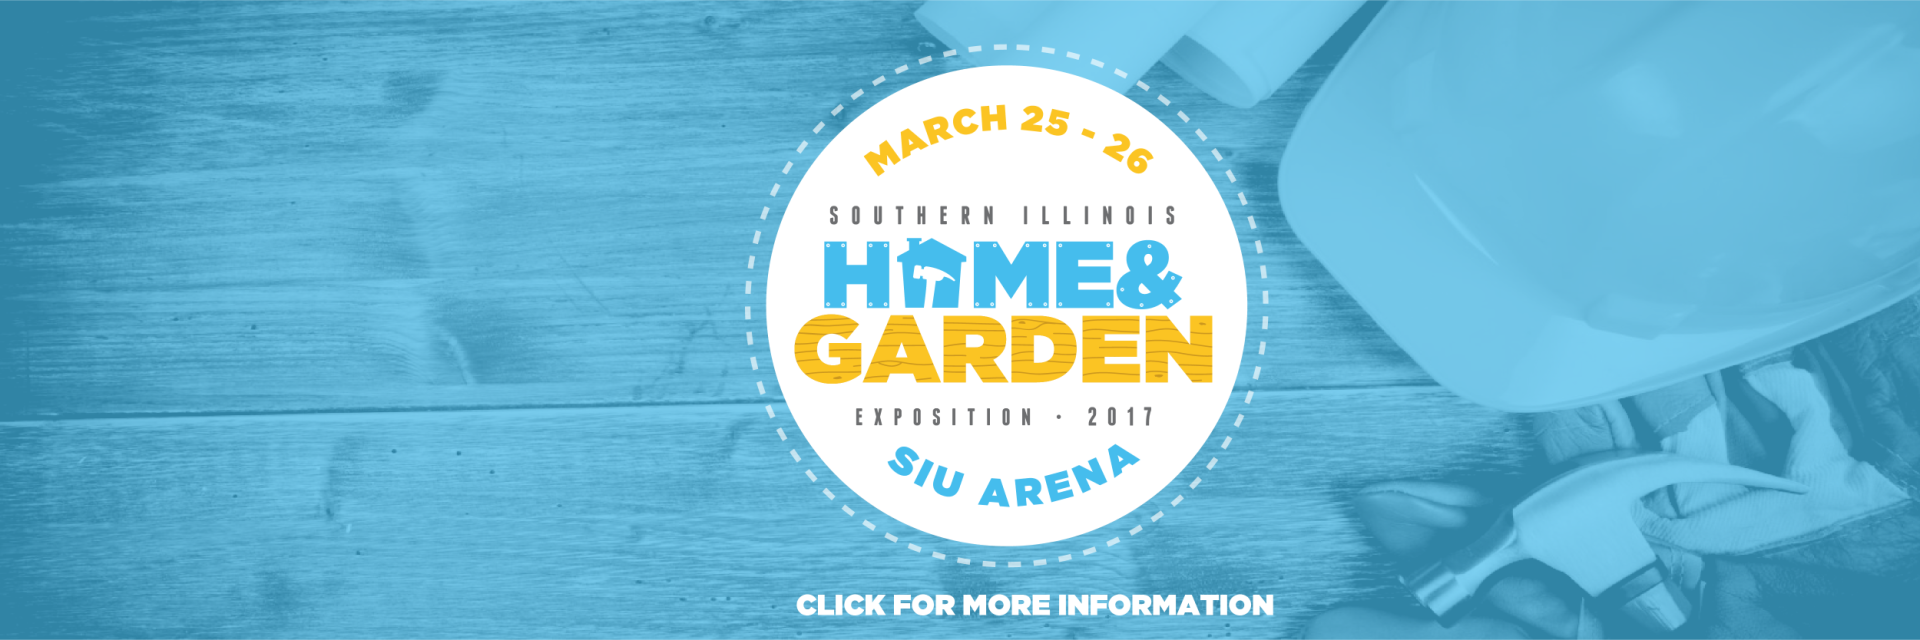 HomeGardenExpo_2017_Slider-01-w2500-w1920.png